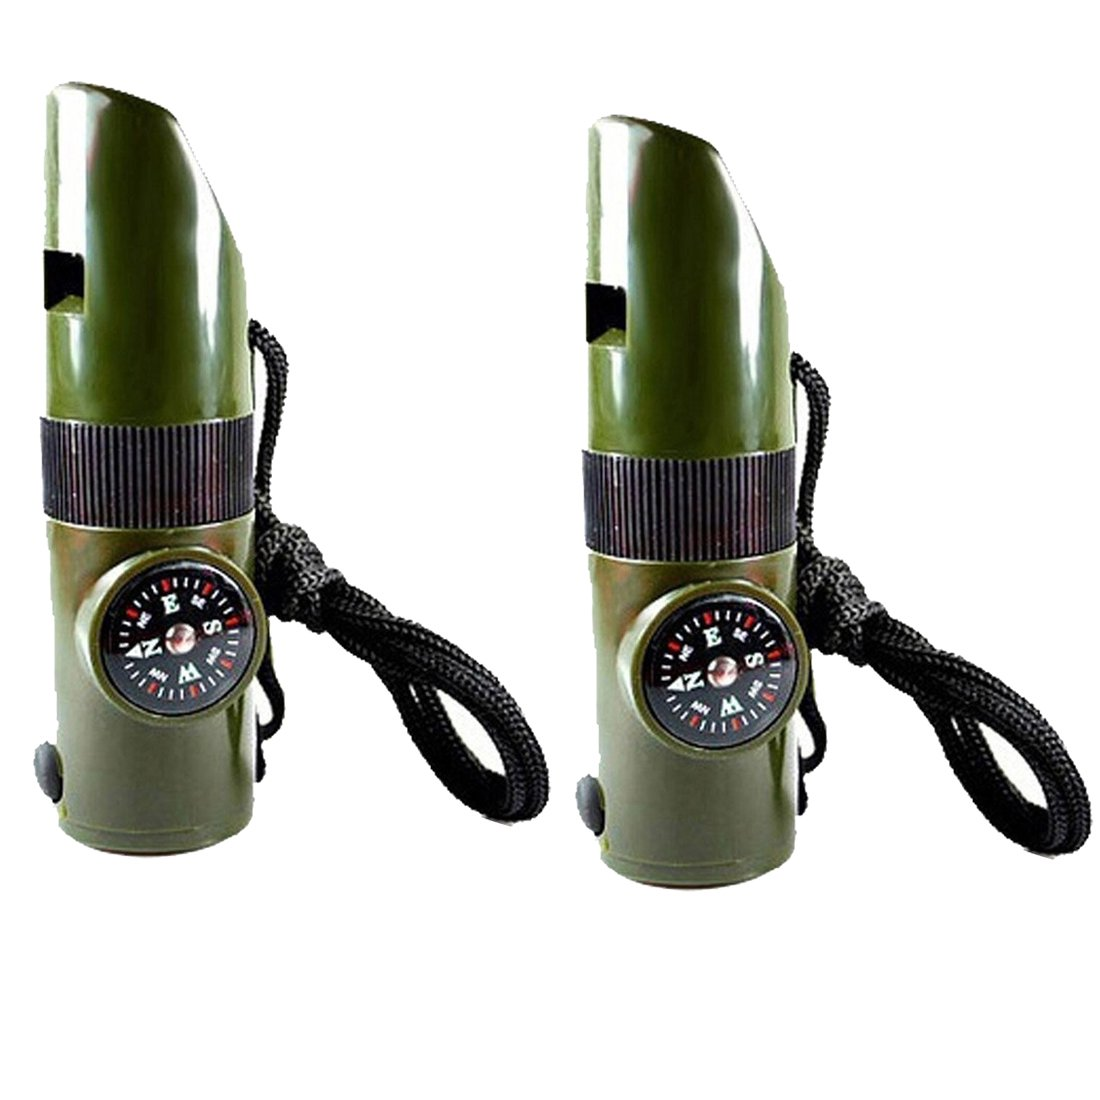 7 in1 Multifunction Camping Survival Compass with Whistle Thermometer Magnifier LED Flashlight Fire 2 PCS